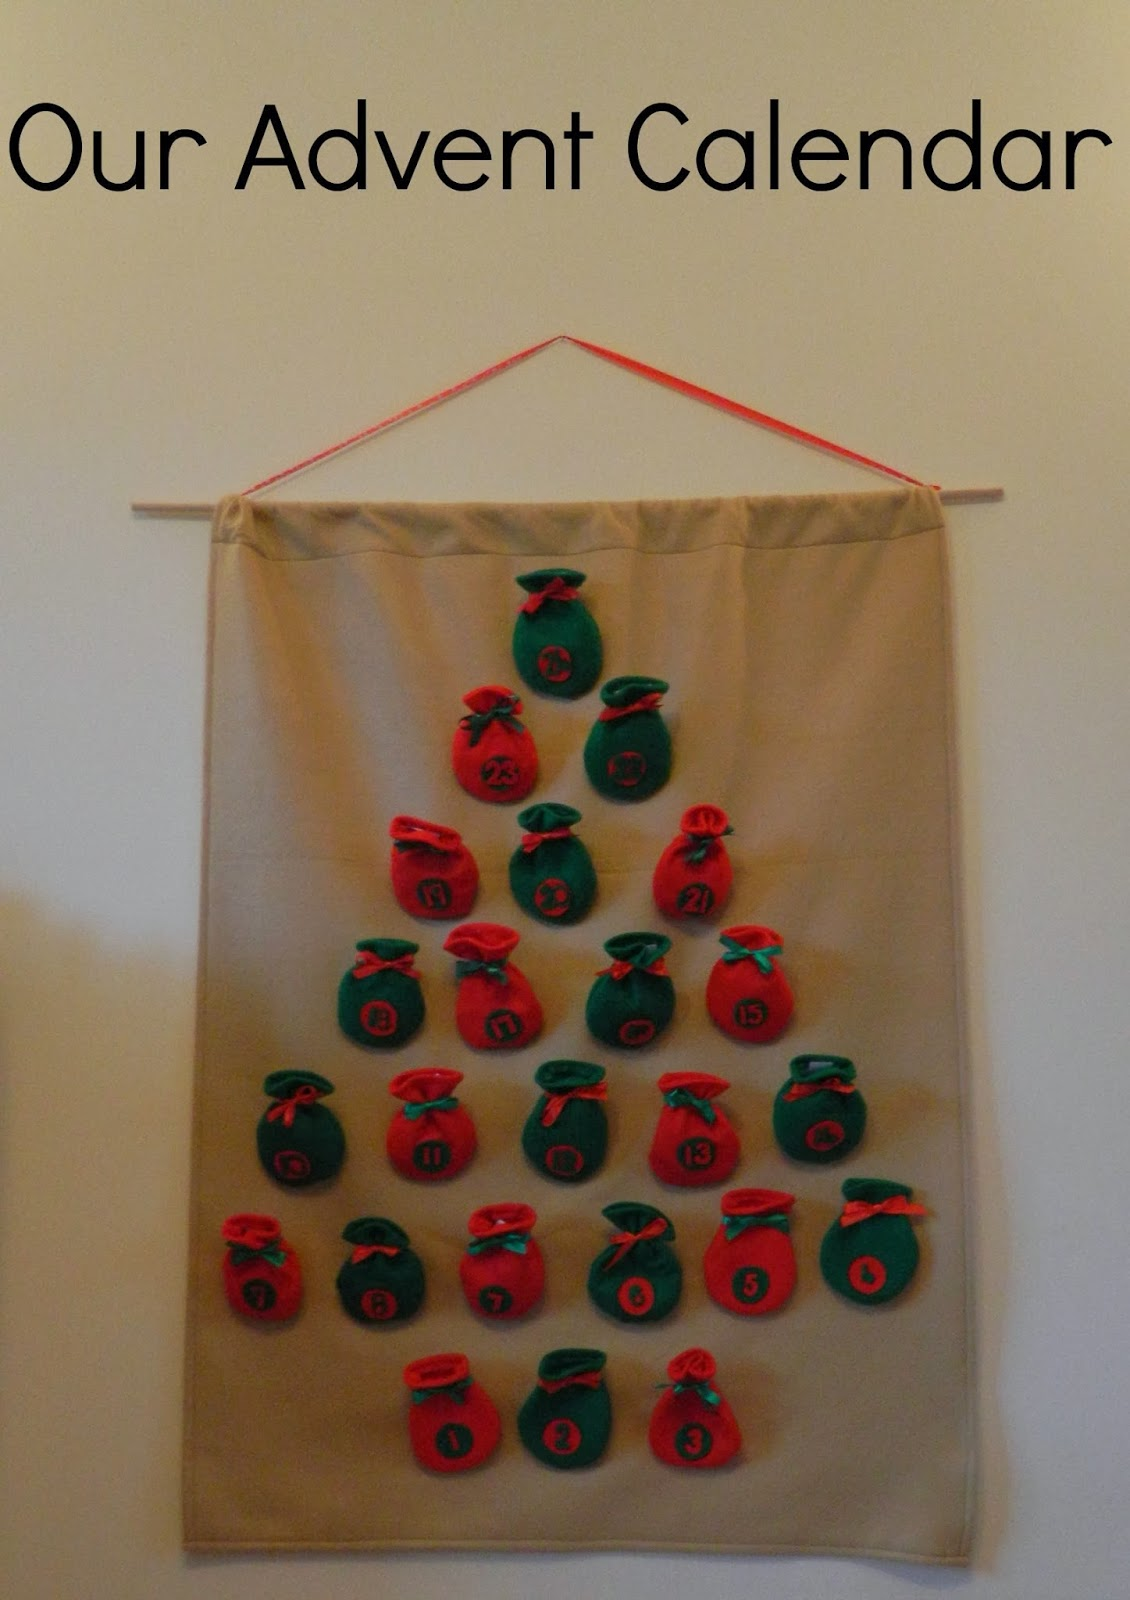 Advent Calendar Self Made : Cakes kids and other ramblings my home made advent calendar